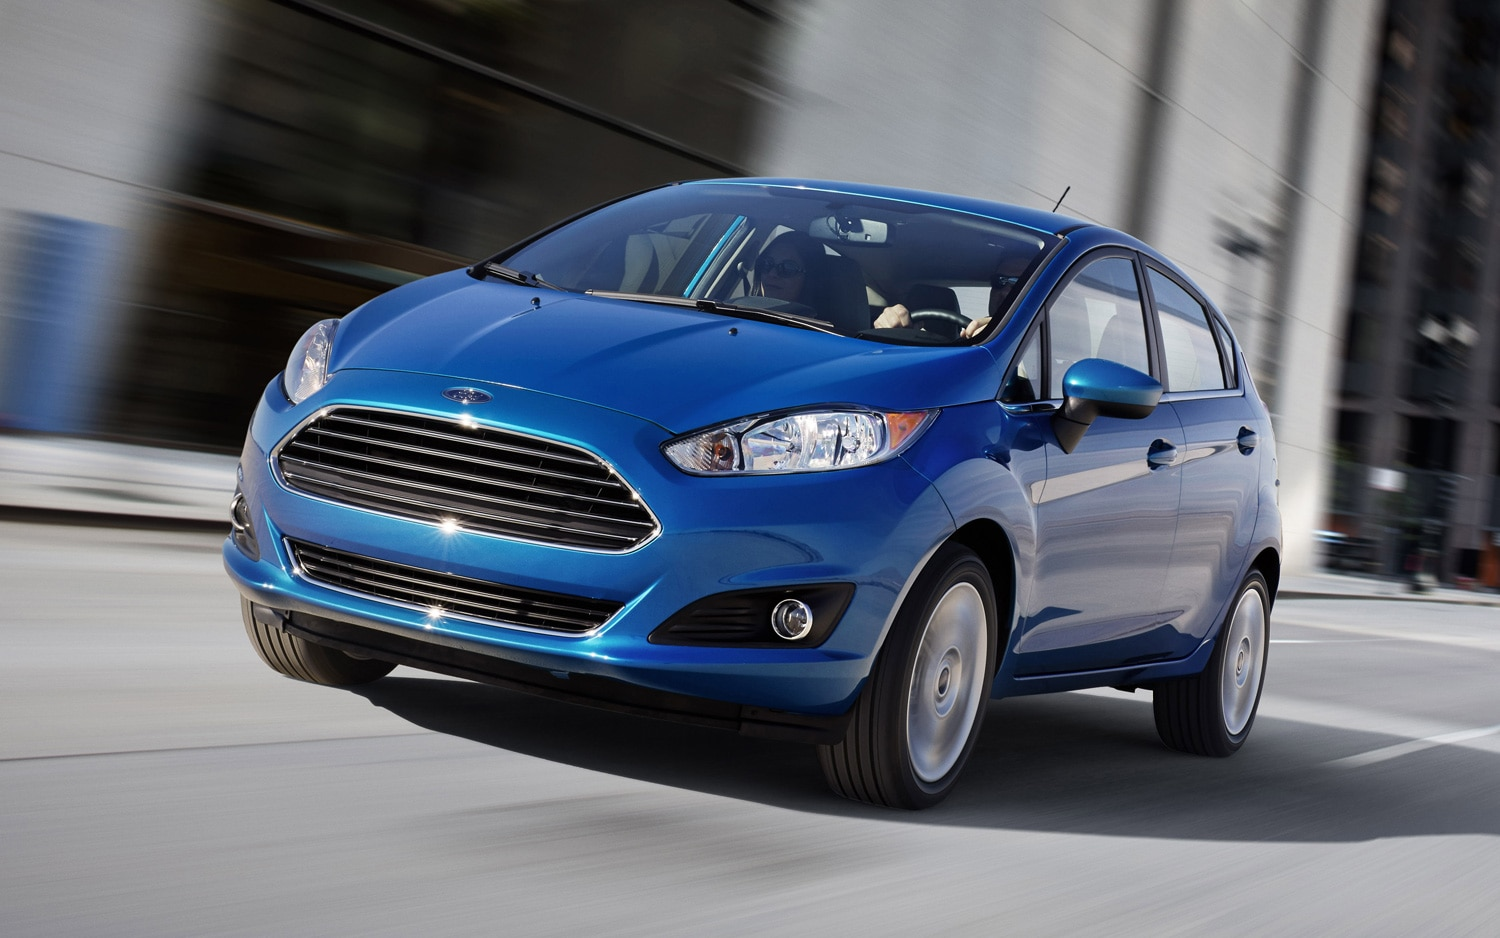 2014 Ford Fiesta Hatchback Front Three Quarter11